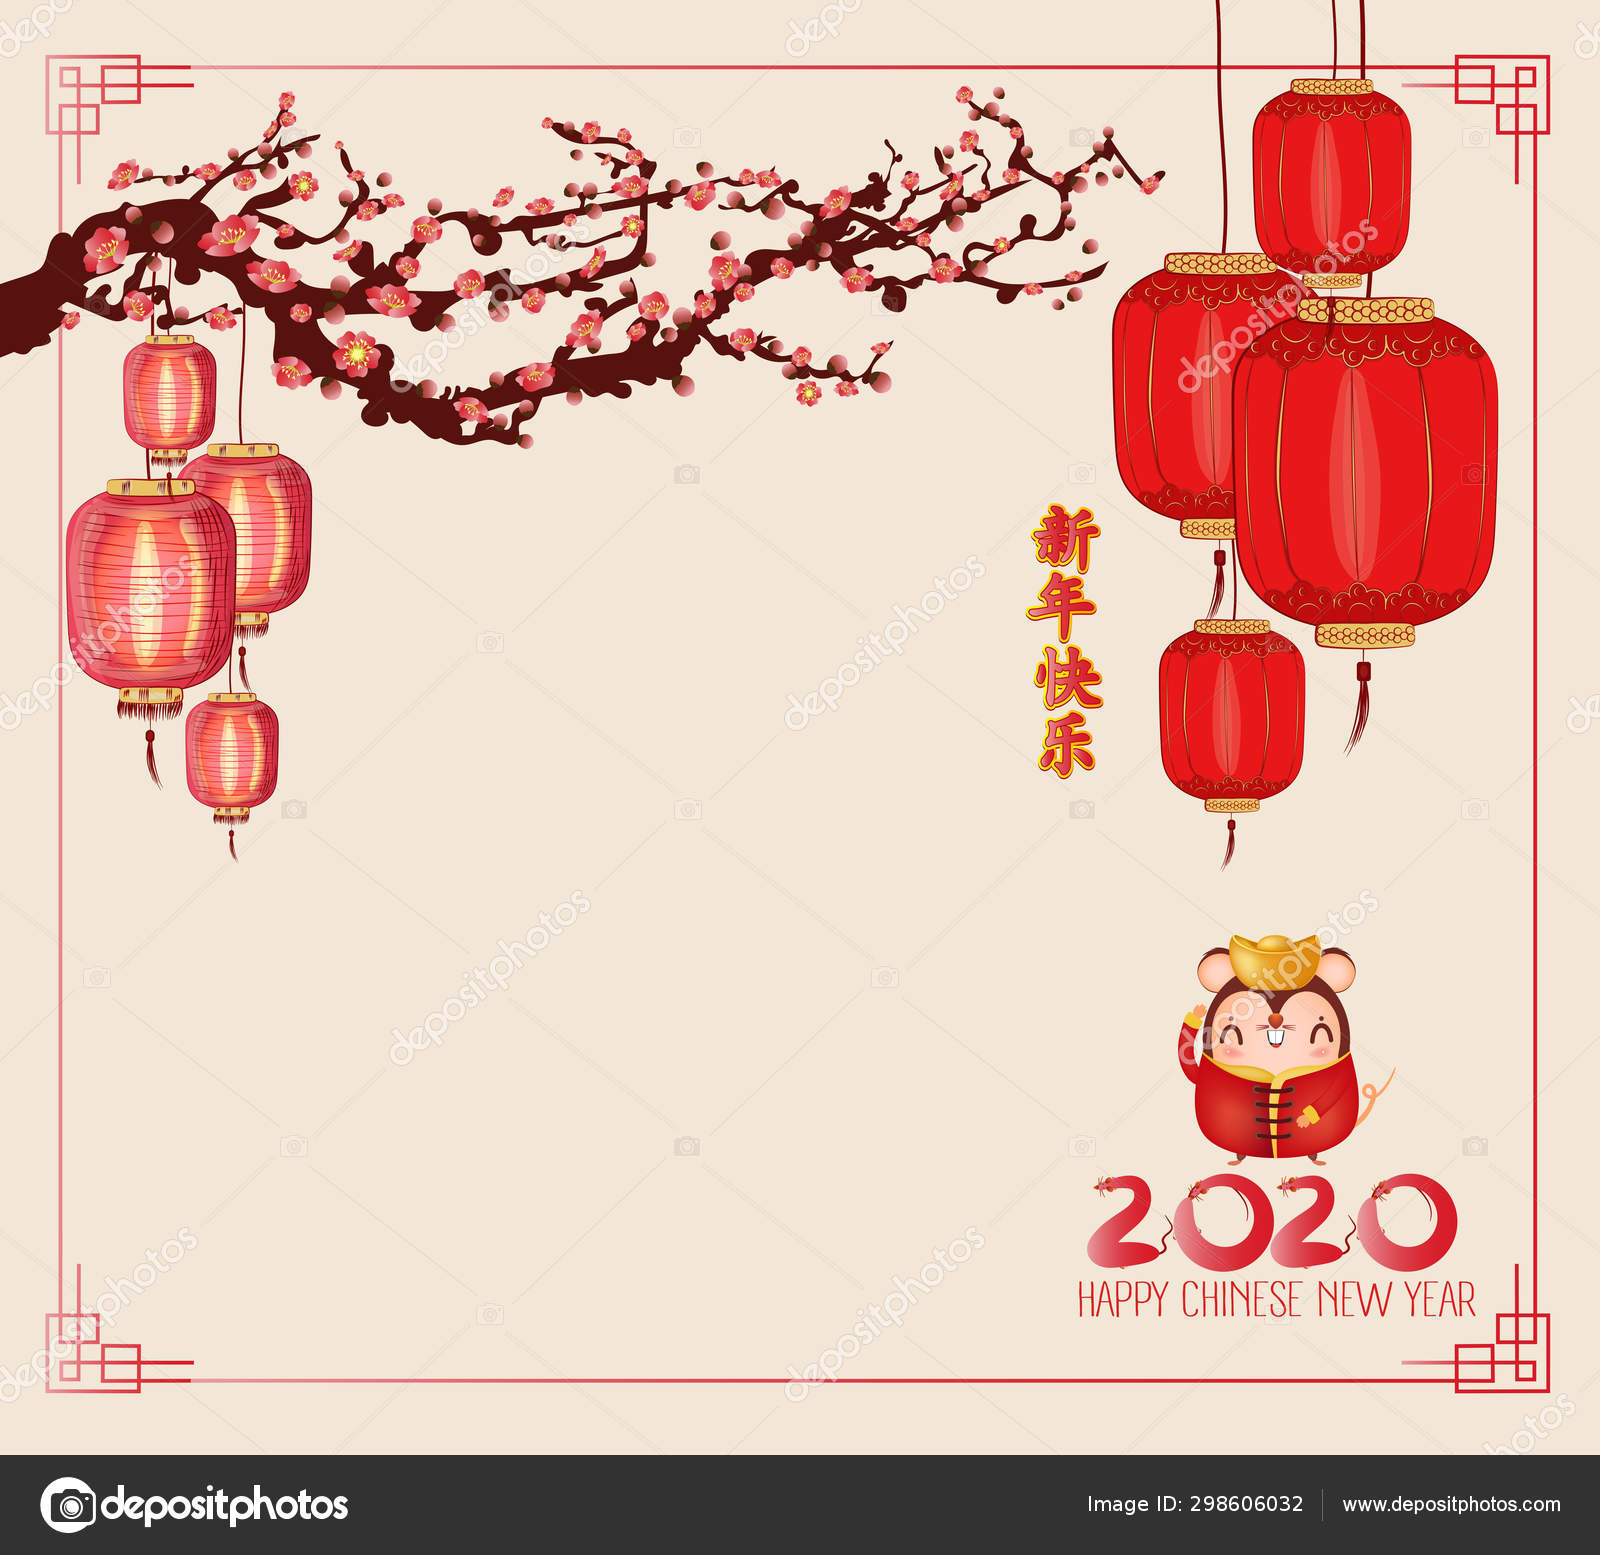 Happy Chinese New Year 2020 Year Rat Lantern Frame ...